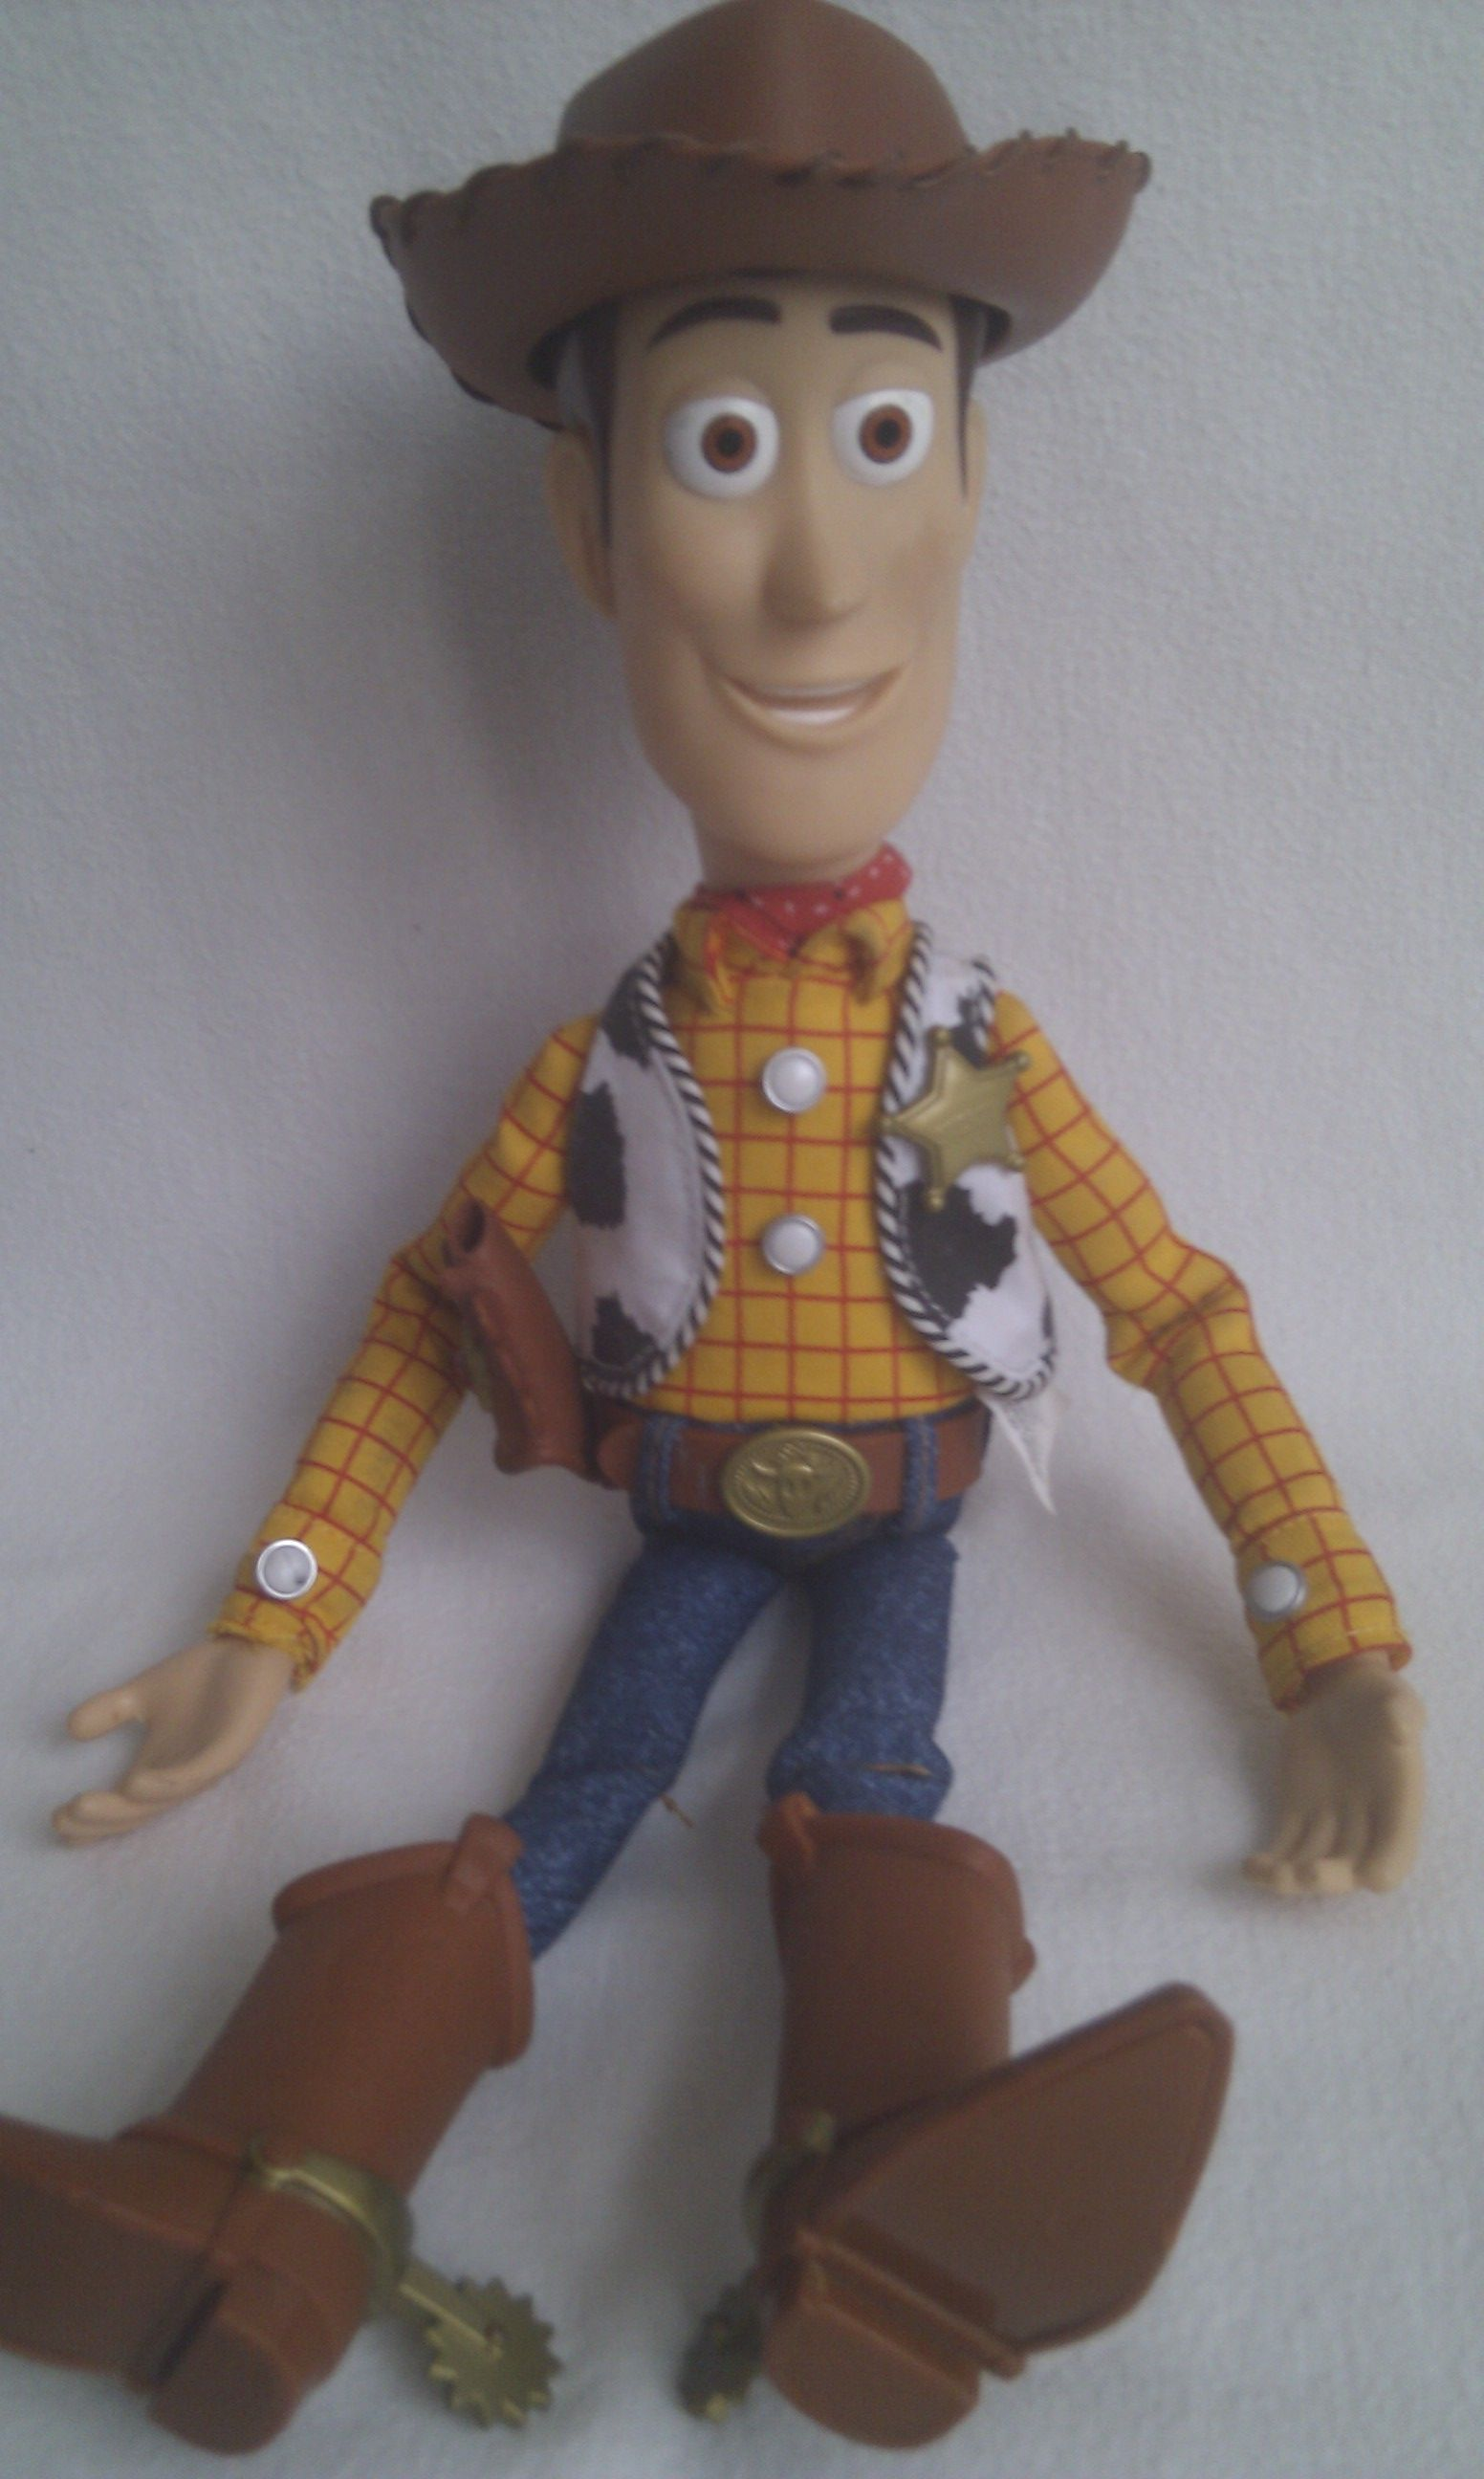 Disney pixar big talking toy story sheriff woody cowboy pull string  collectable toy jpg 1552x2592 Disney 136b6813bb6